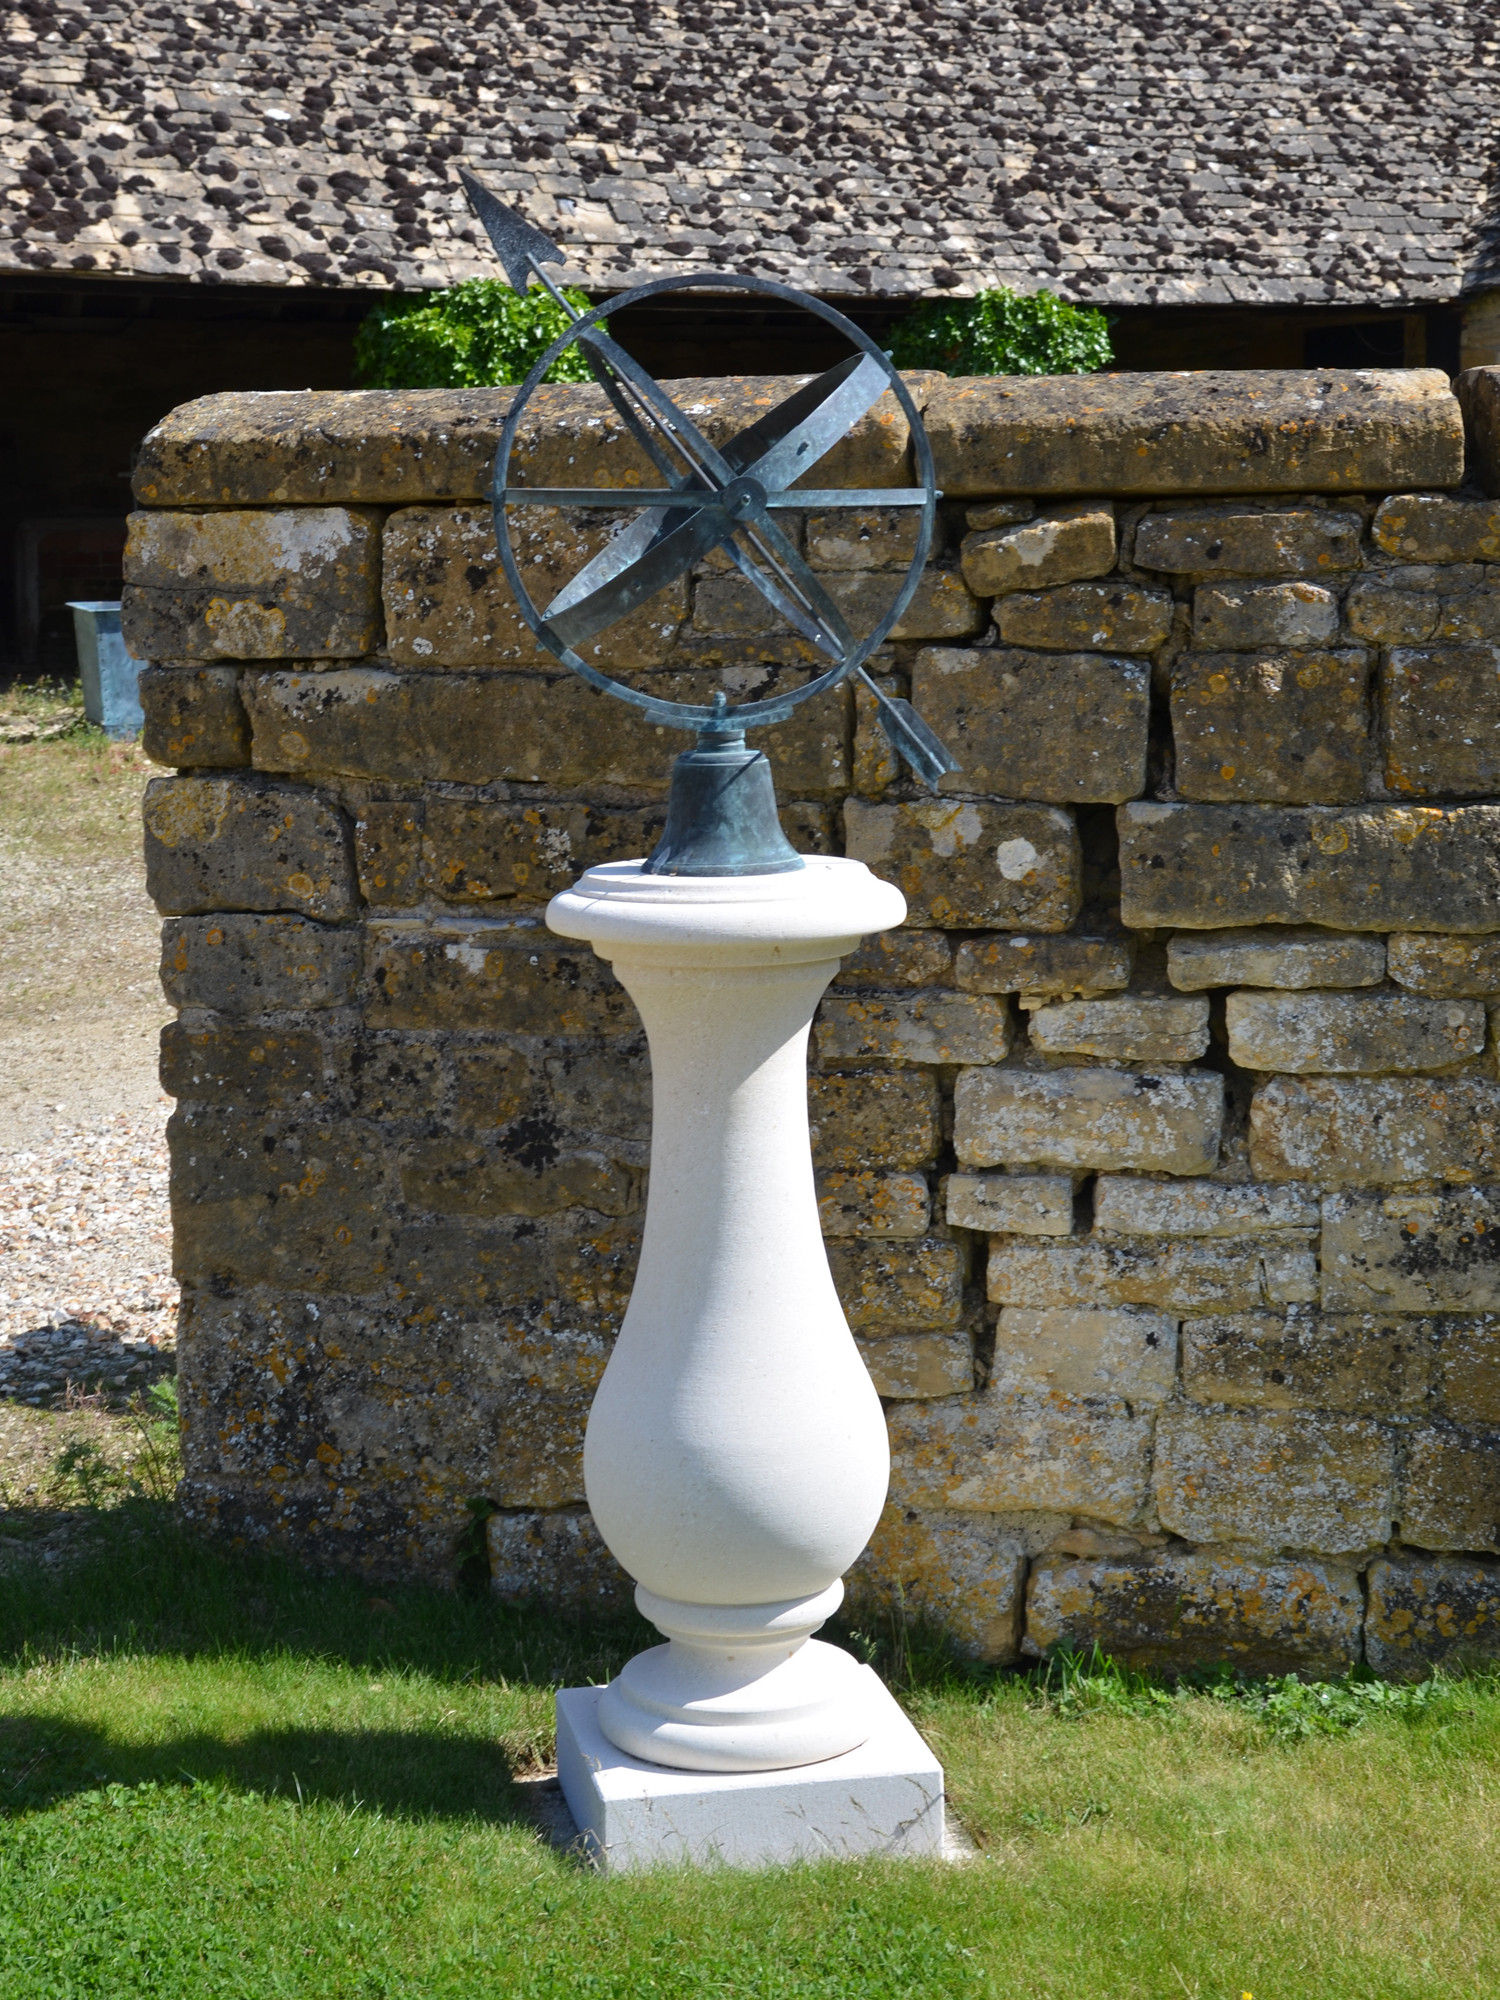 The Solstice Sundial Pedestal with Zenith Armillary Sphere